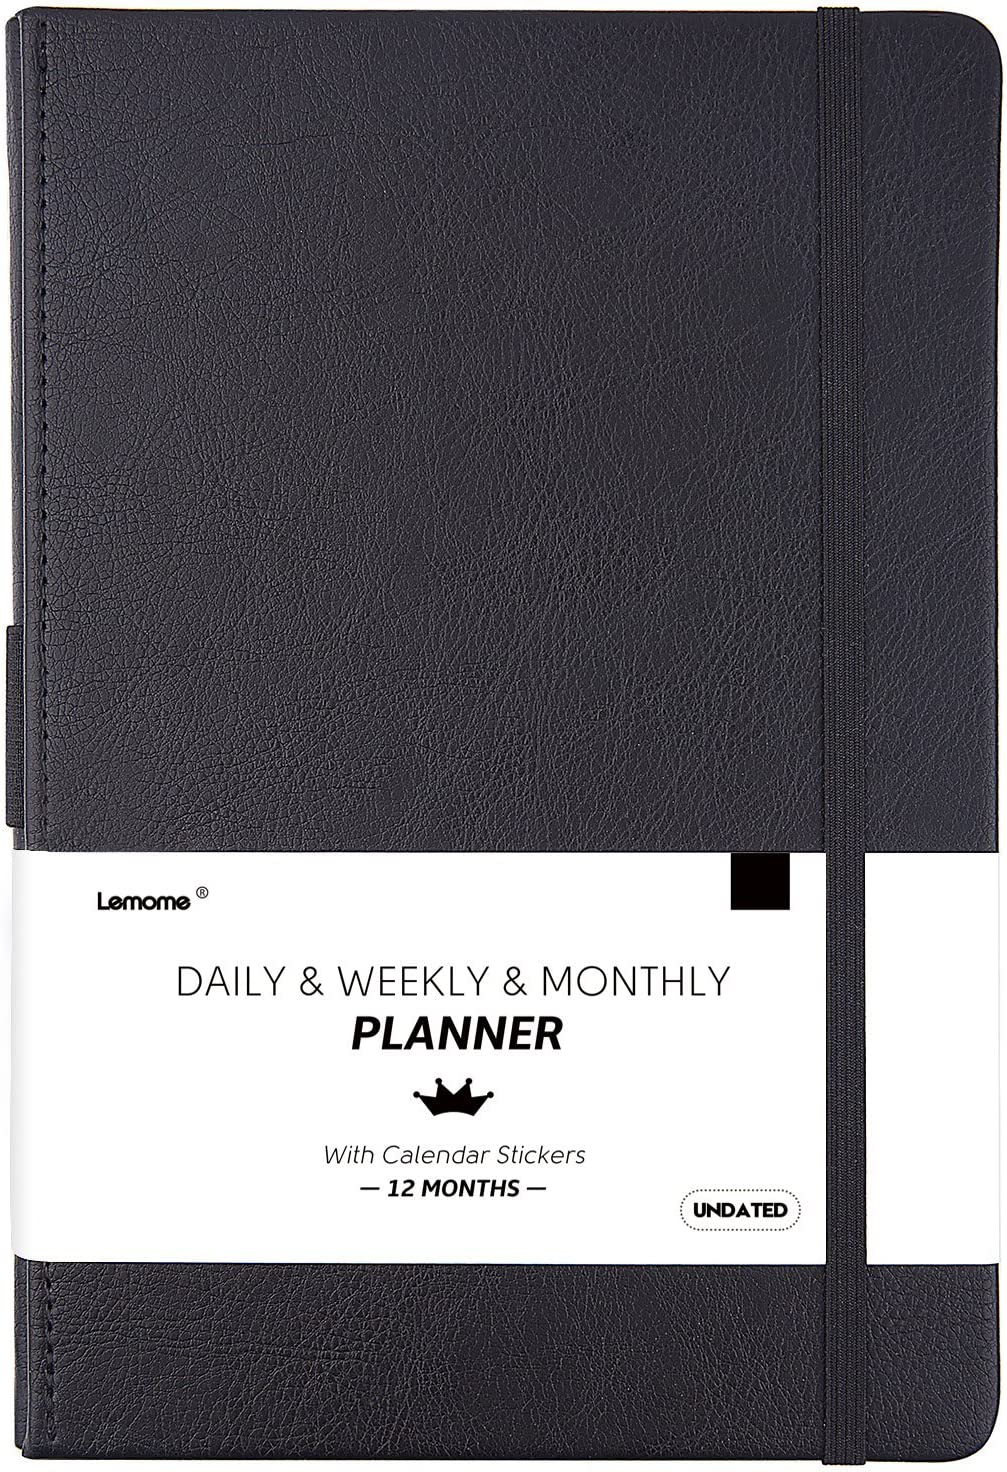 "Undated Daily/Monthly Planner + Monthly & Weekly to-DO List to Improve Productivity, 5.75"" x 8.25"", Premium Thick Paper, Pen Holder, Inner Pocket, 12 Months, Gift Box"